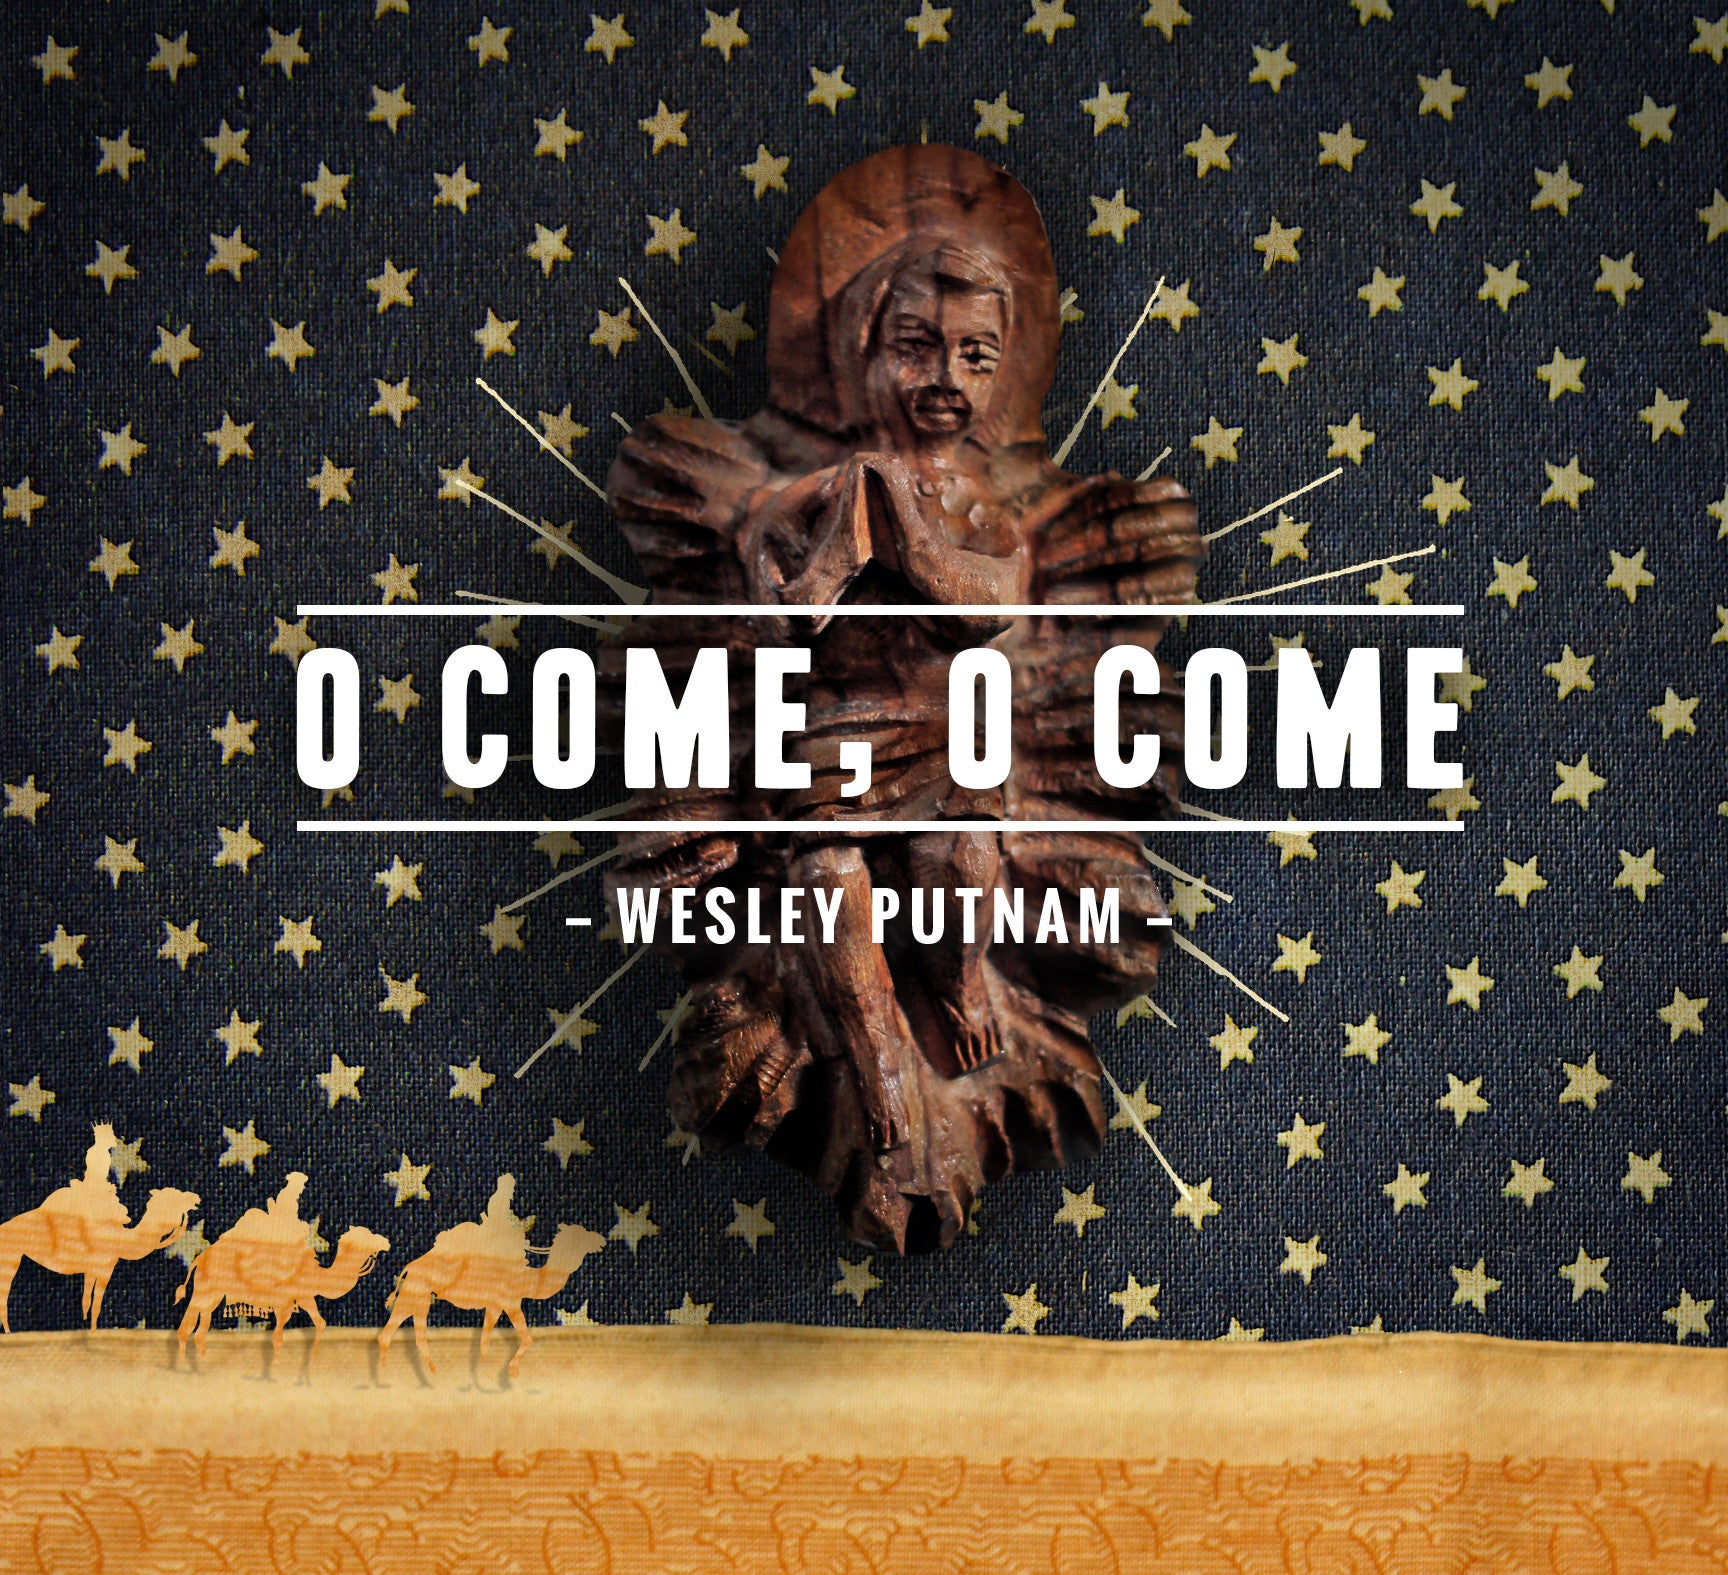 O Come, O Come - Christmas Album